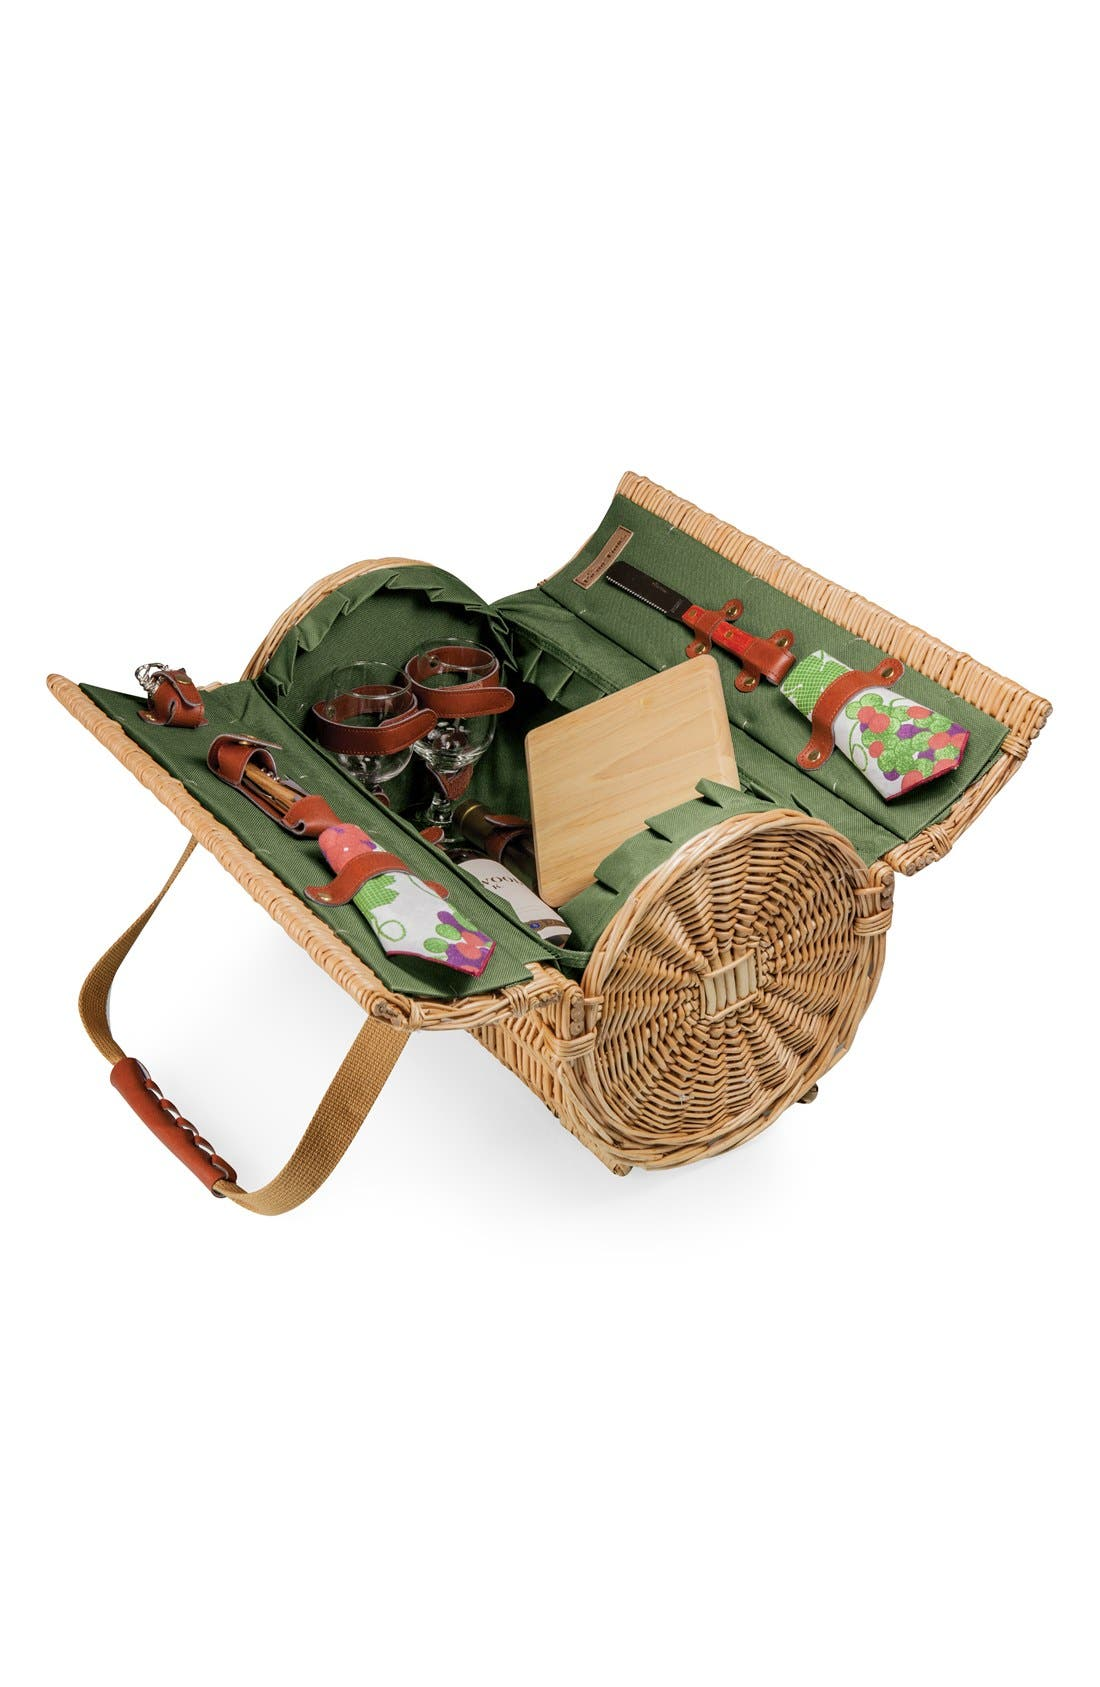 Main Image - Picnic Time 'Verona' Wicker Picnic Basket